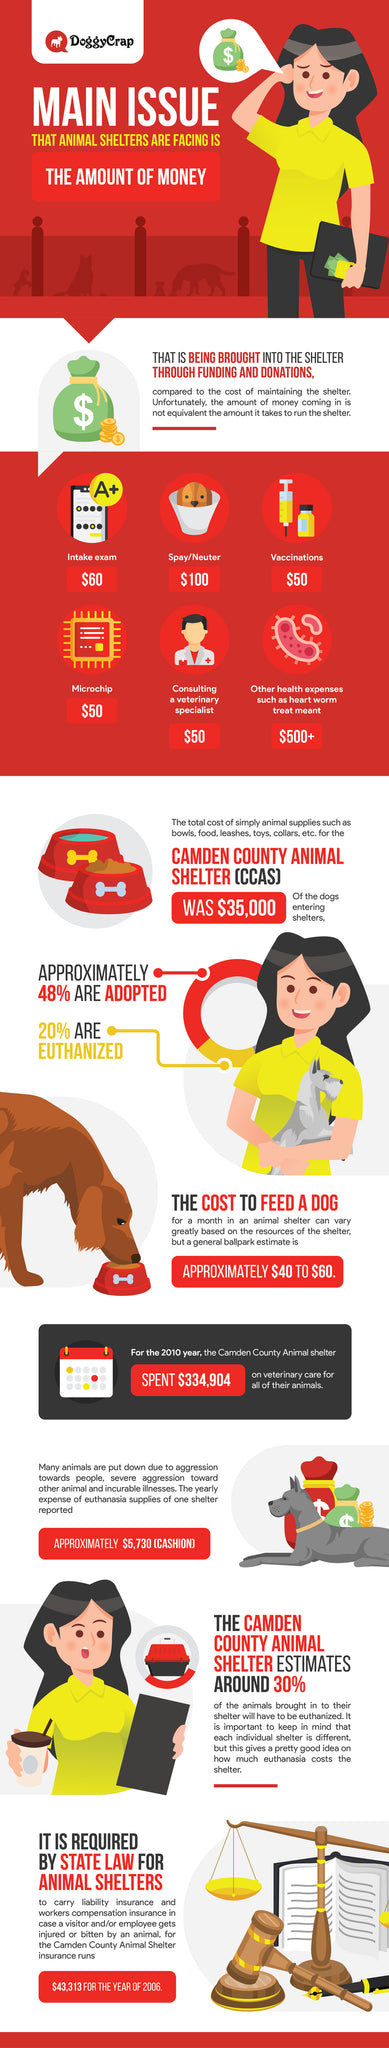 Animal Shelter Funding Infographic